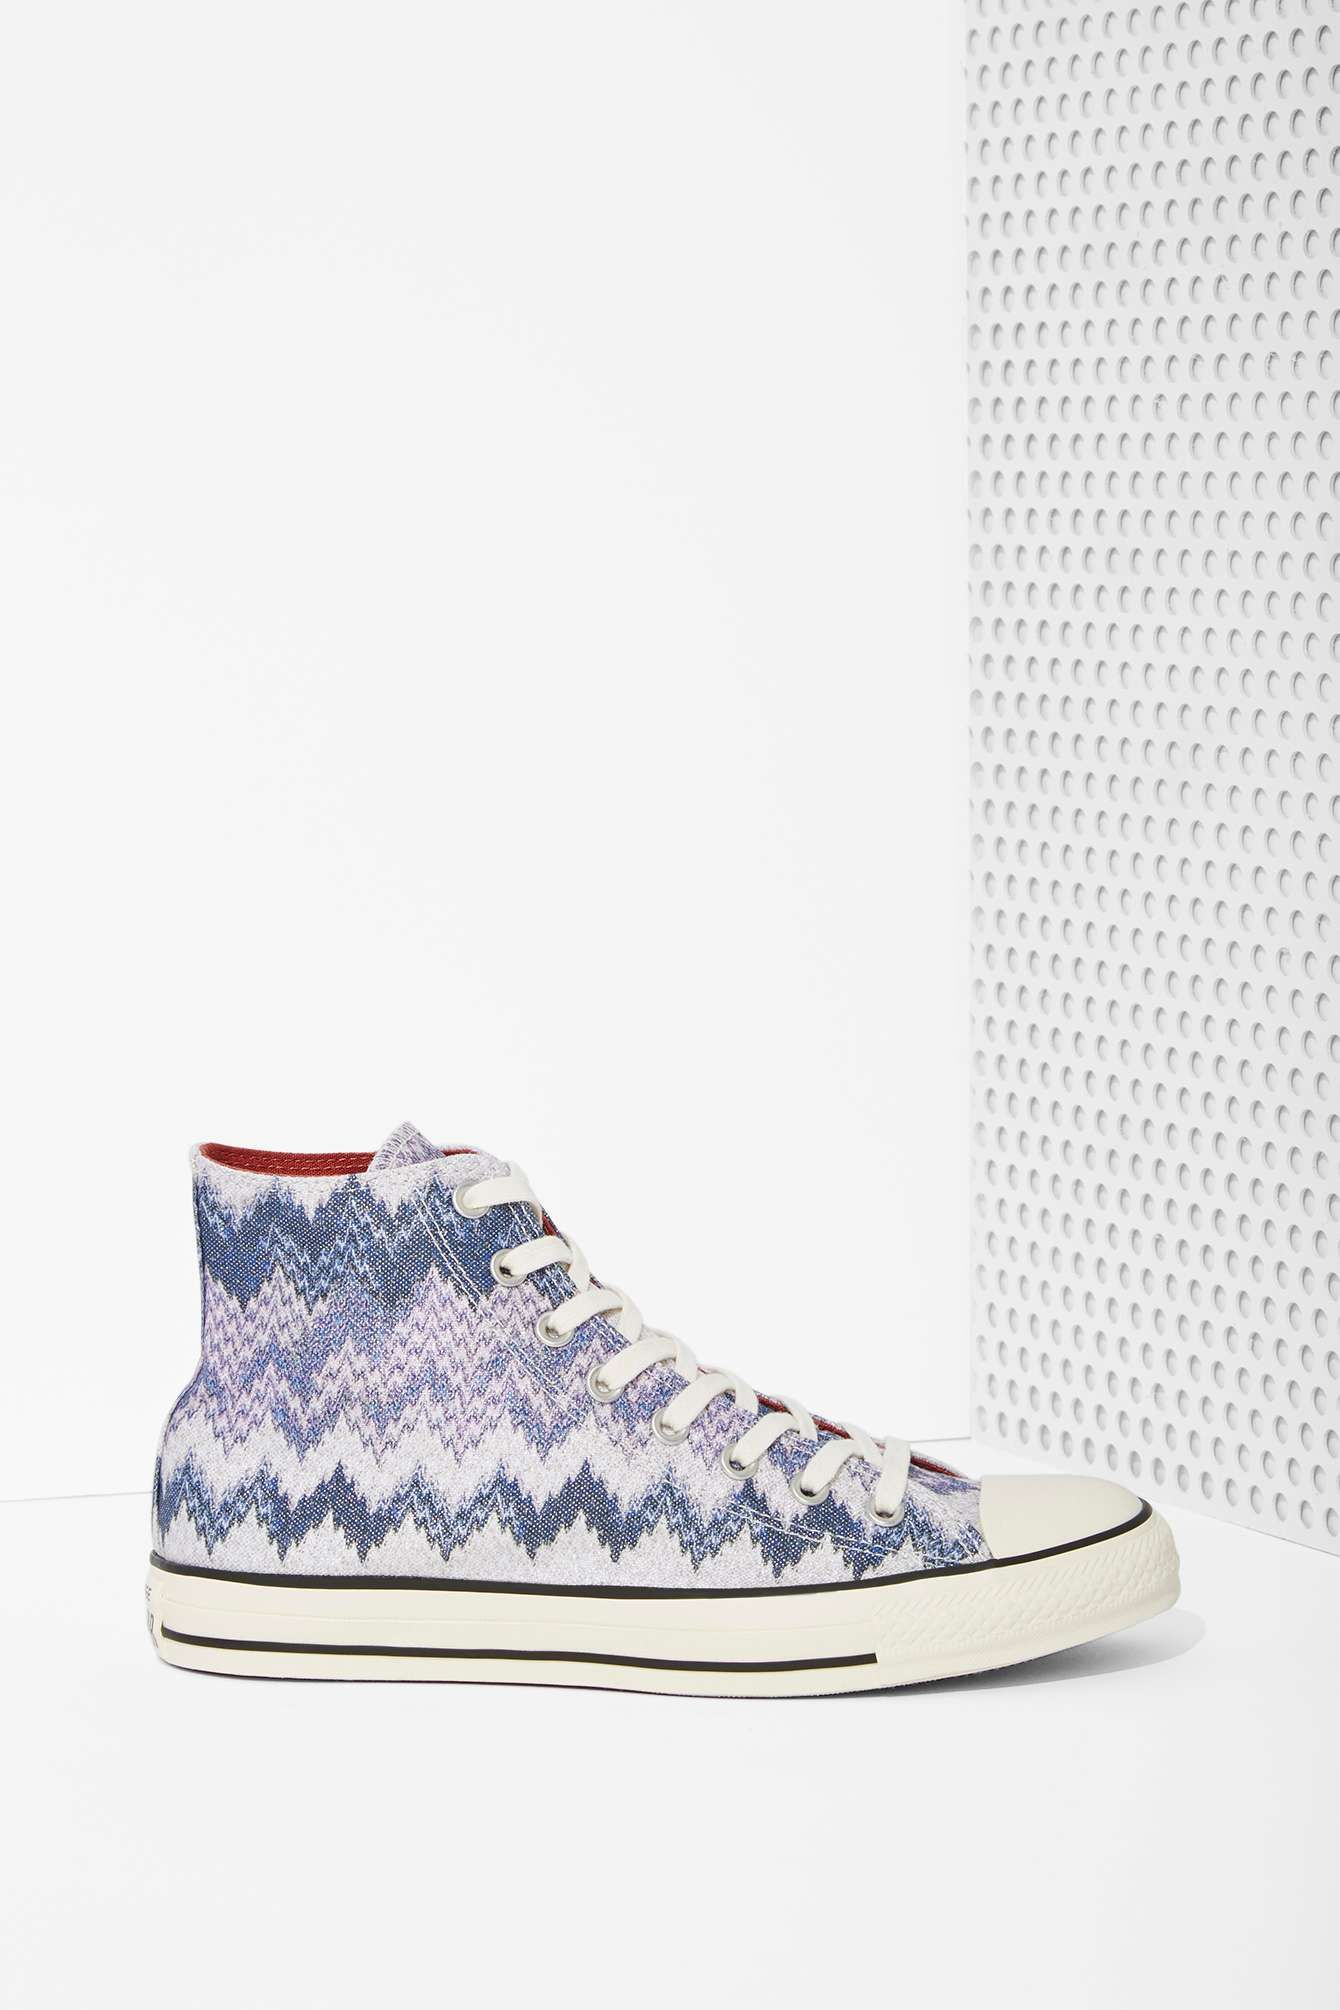 Missoni x Converse All Star High-Top Sneaker | Nasty Gal